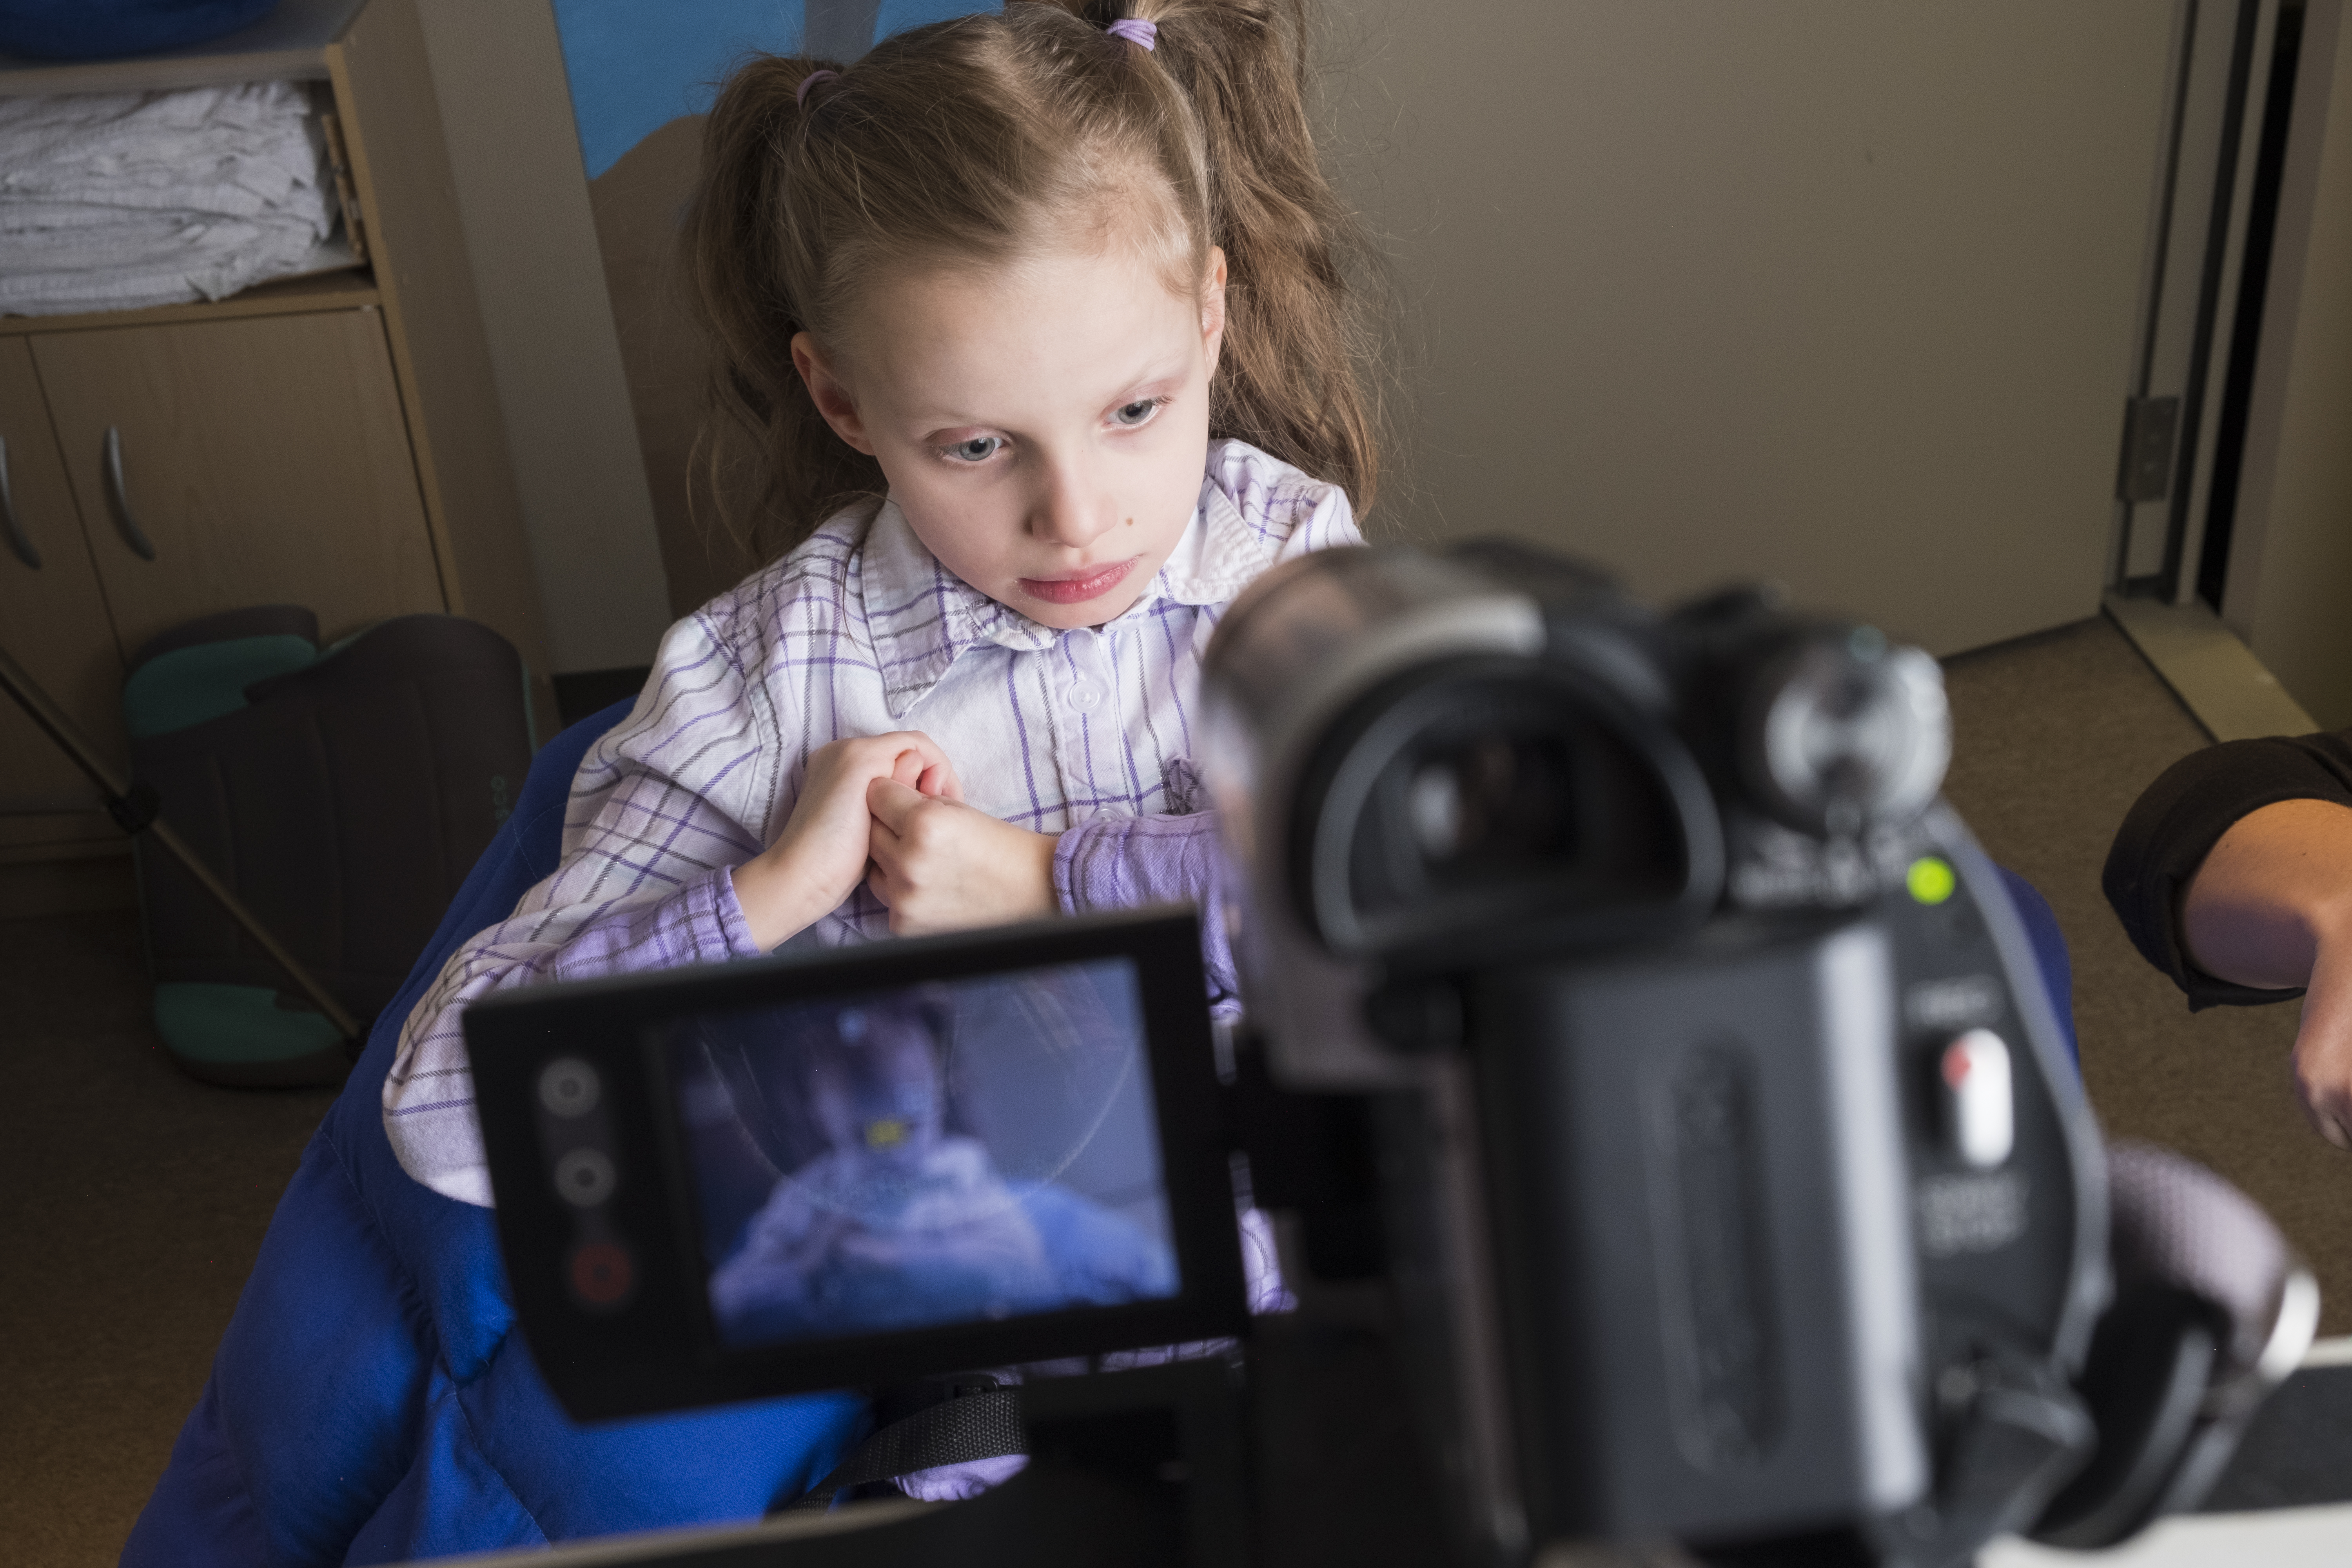 Image shows a young girl sitting in front of a camera.